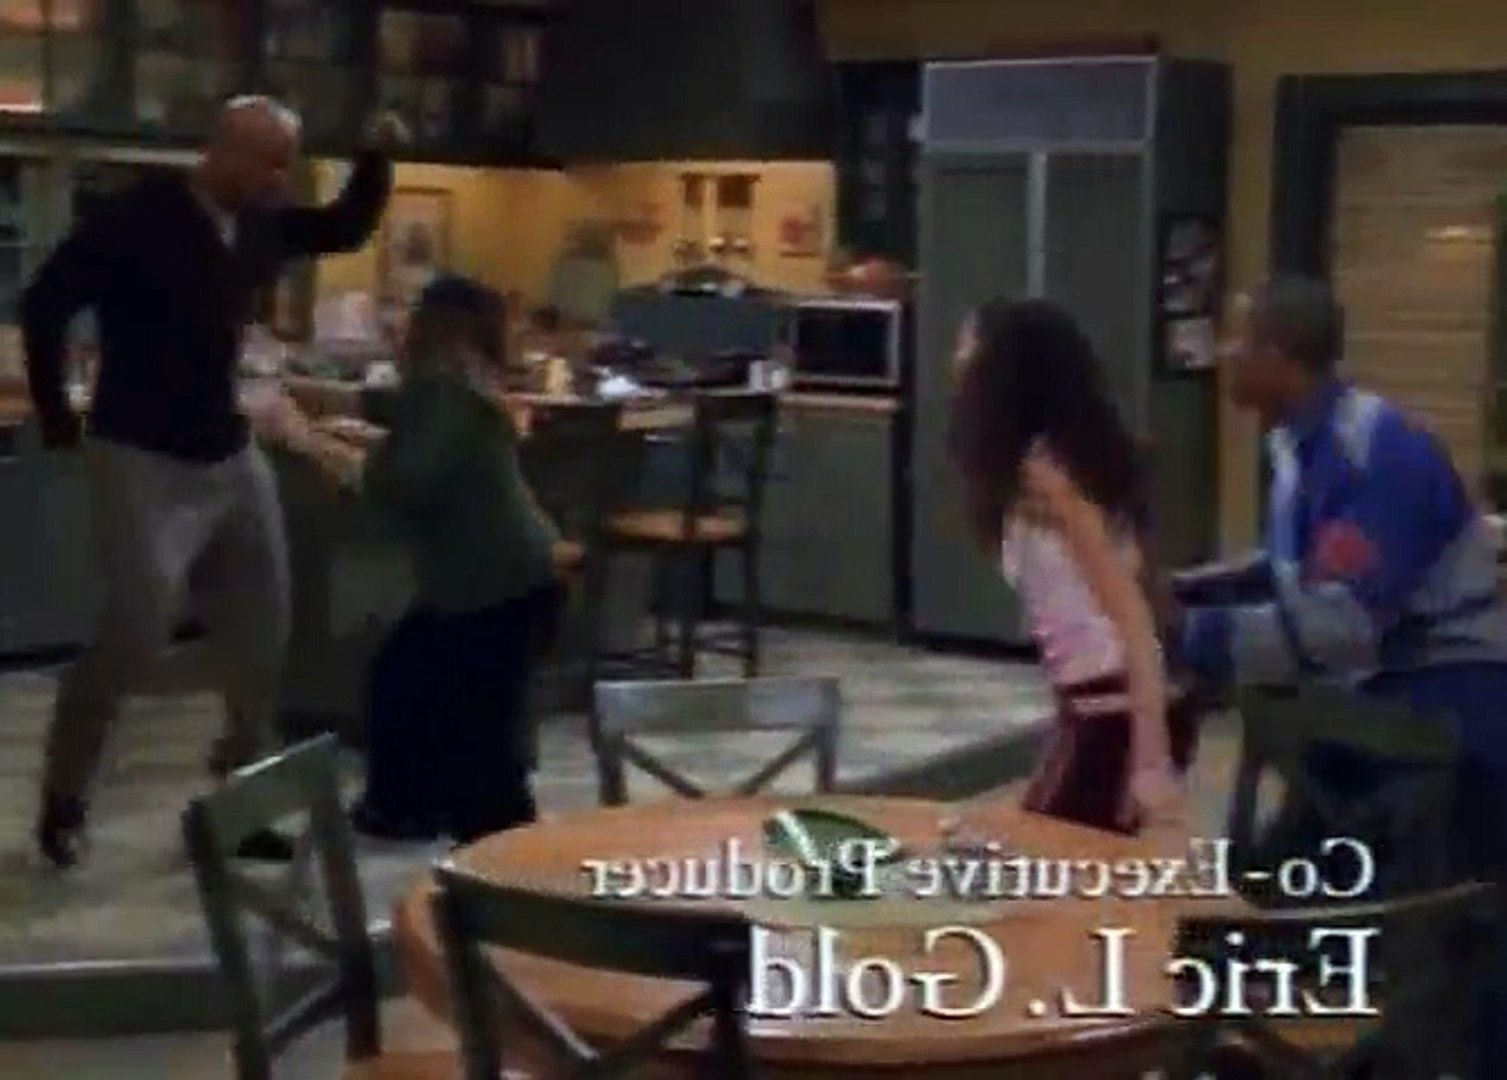 My Wife and Kids S03 - Ep24 The Bg Bng Thry HD Watch